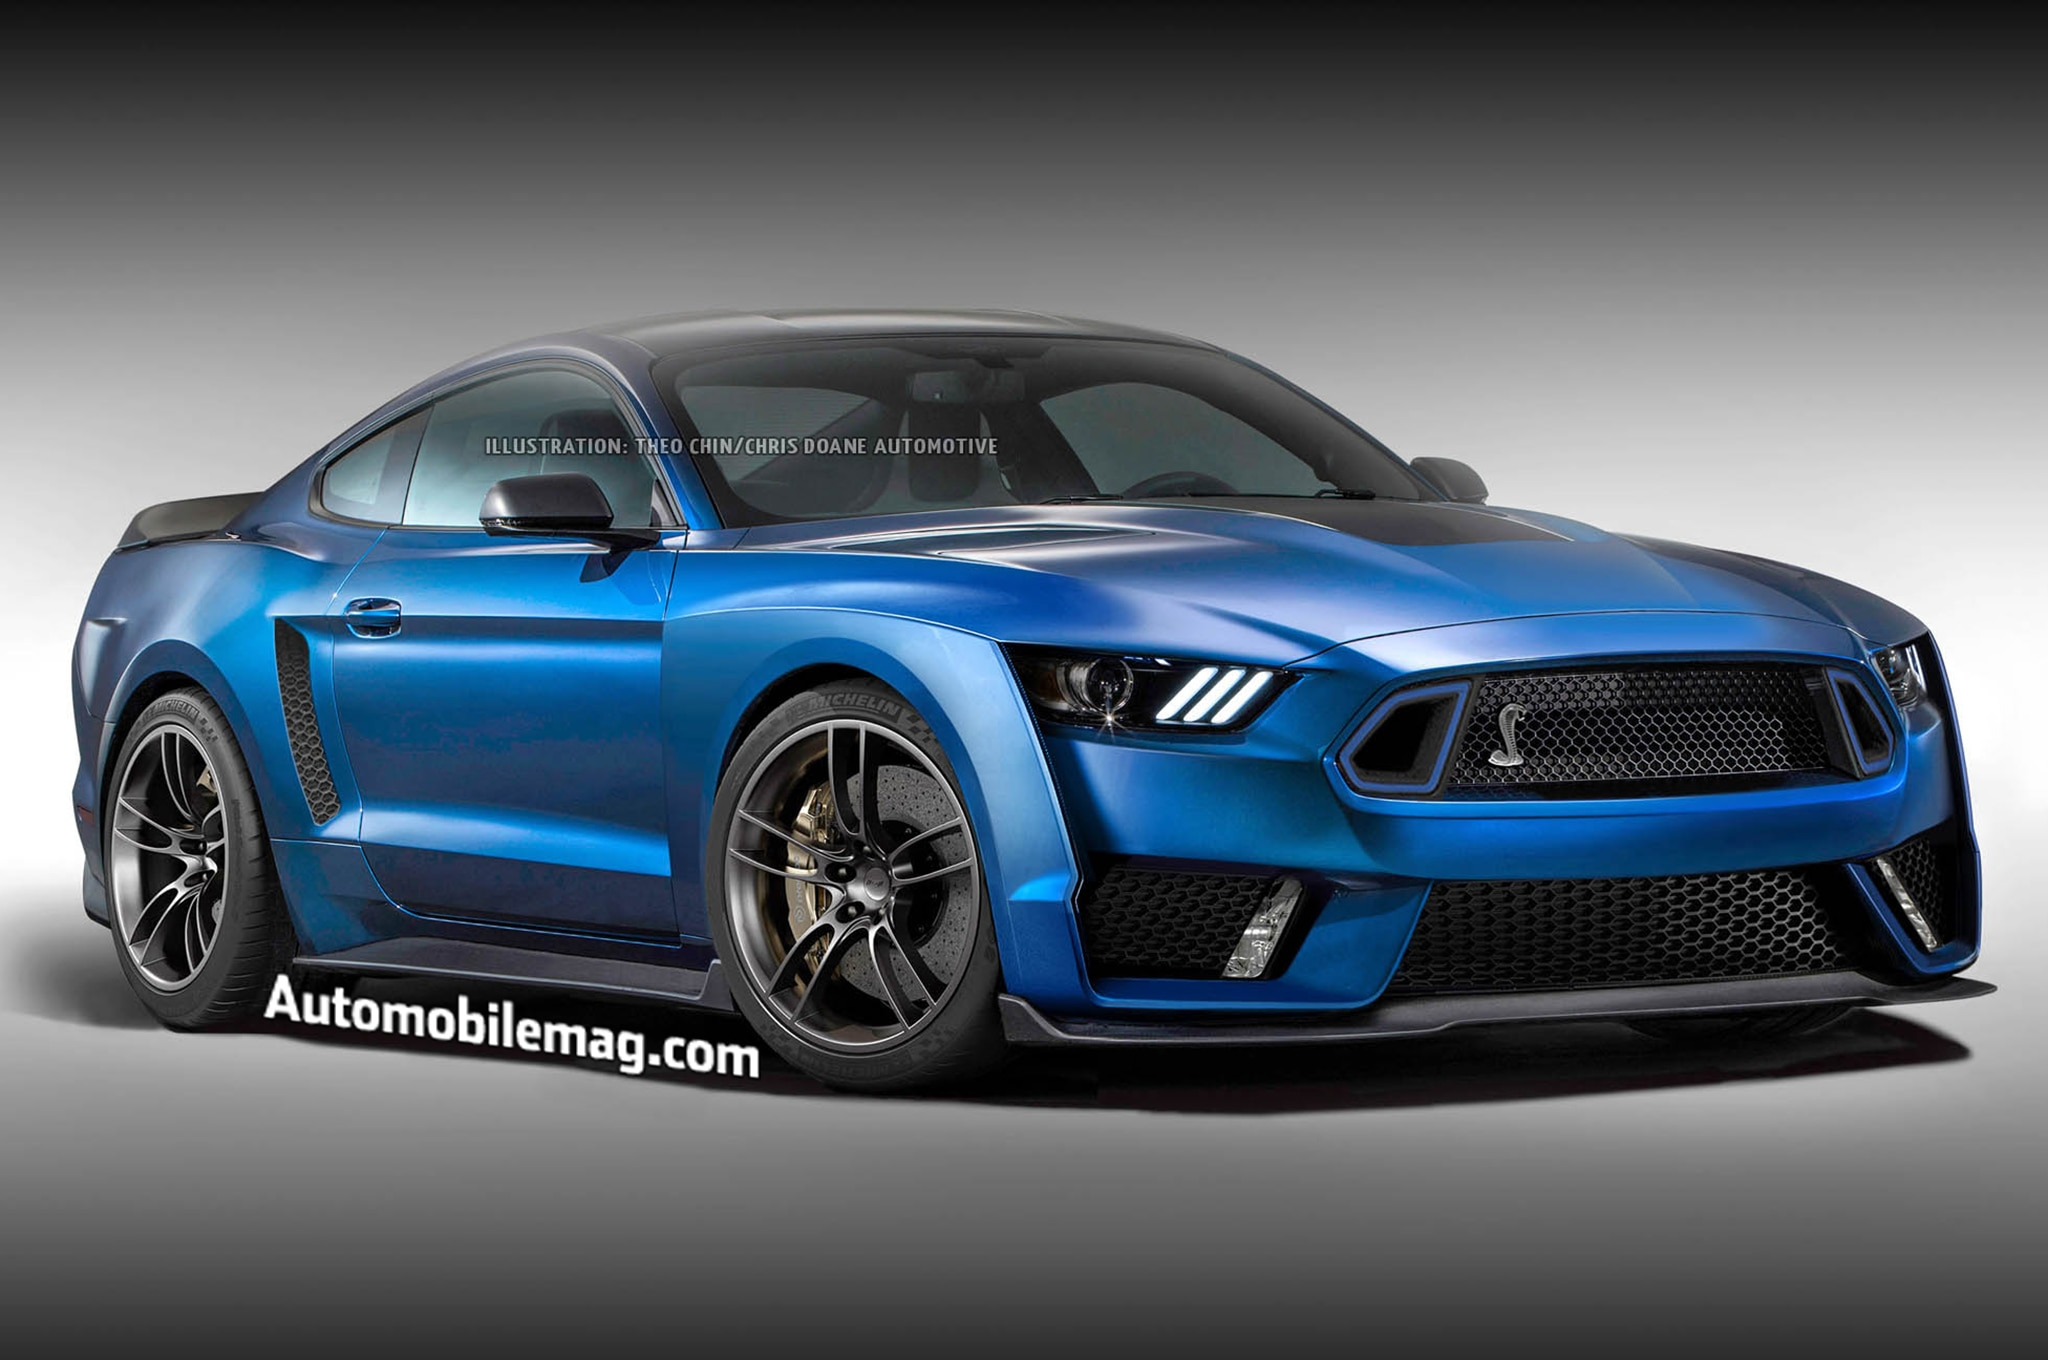 The Future Of American Muscle Ford Shelby Gt500 Vs Chevy Camaro Zl1 Gt 500 1 2